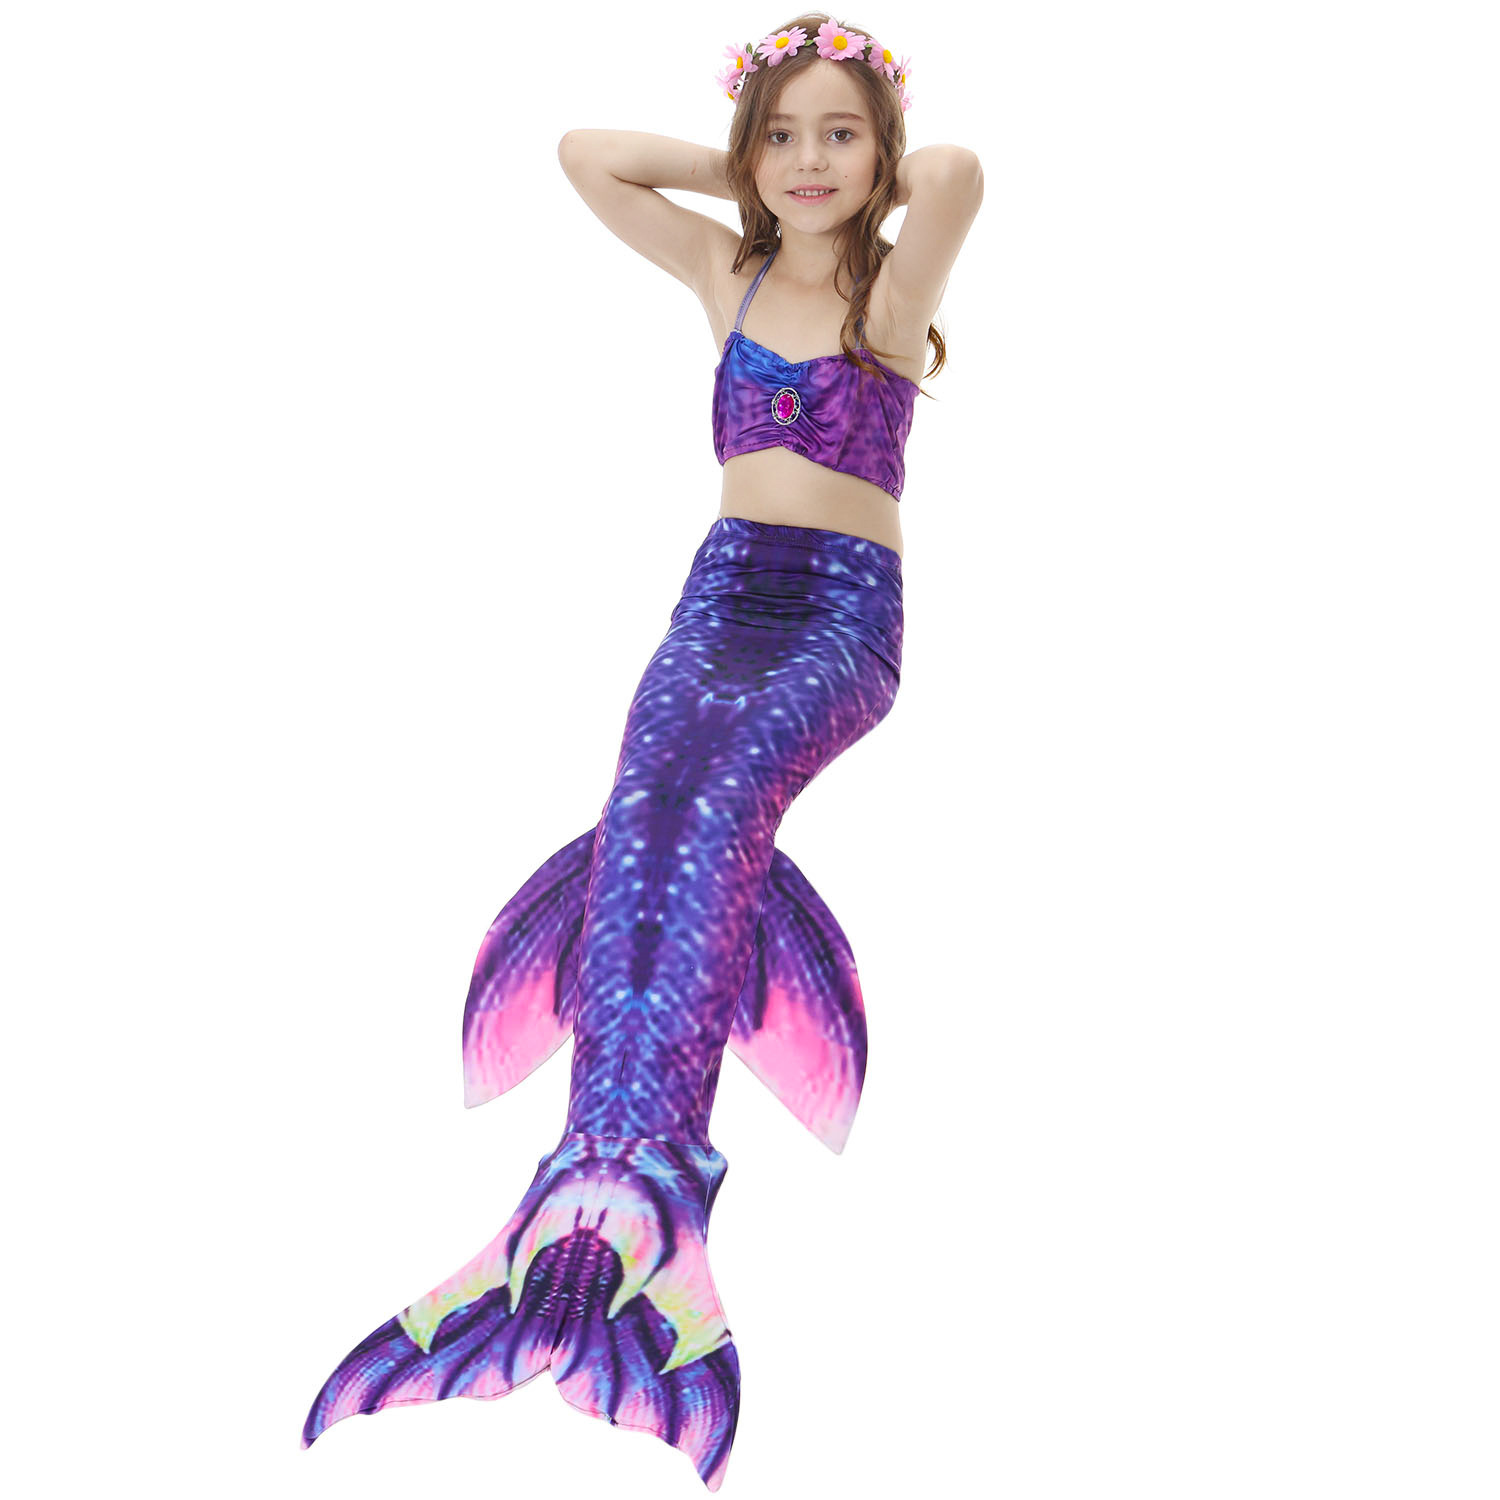 Kids Fish Costume For Swimming Bikini Clothing Girls 3-12 Years Old Mermaid Tails Cosplay Shorts Tops Dress